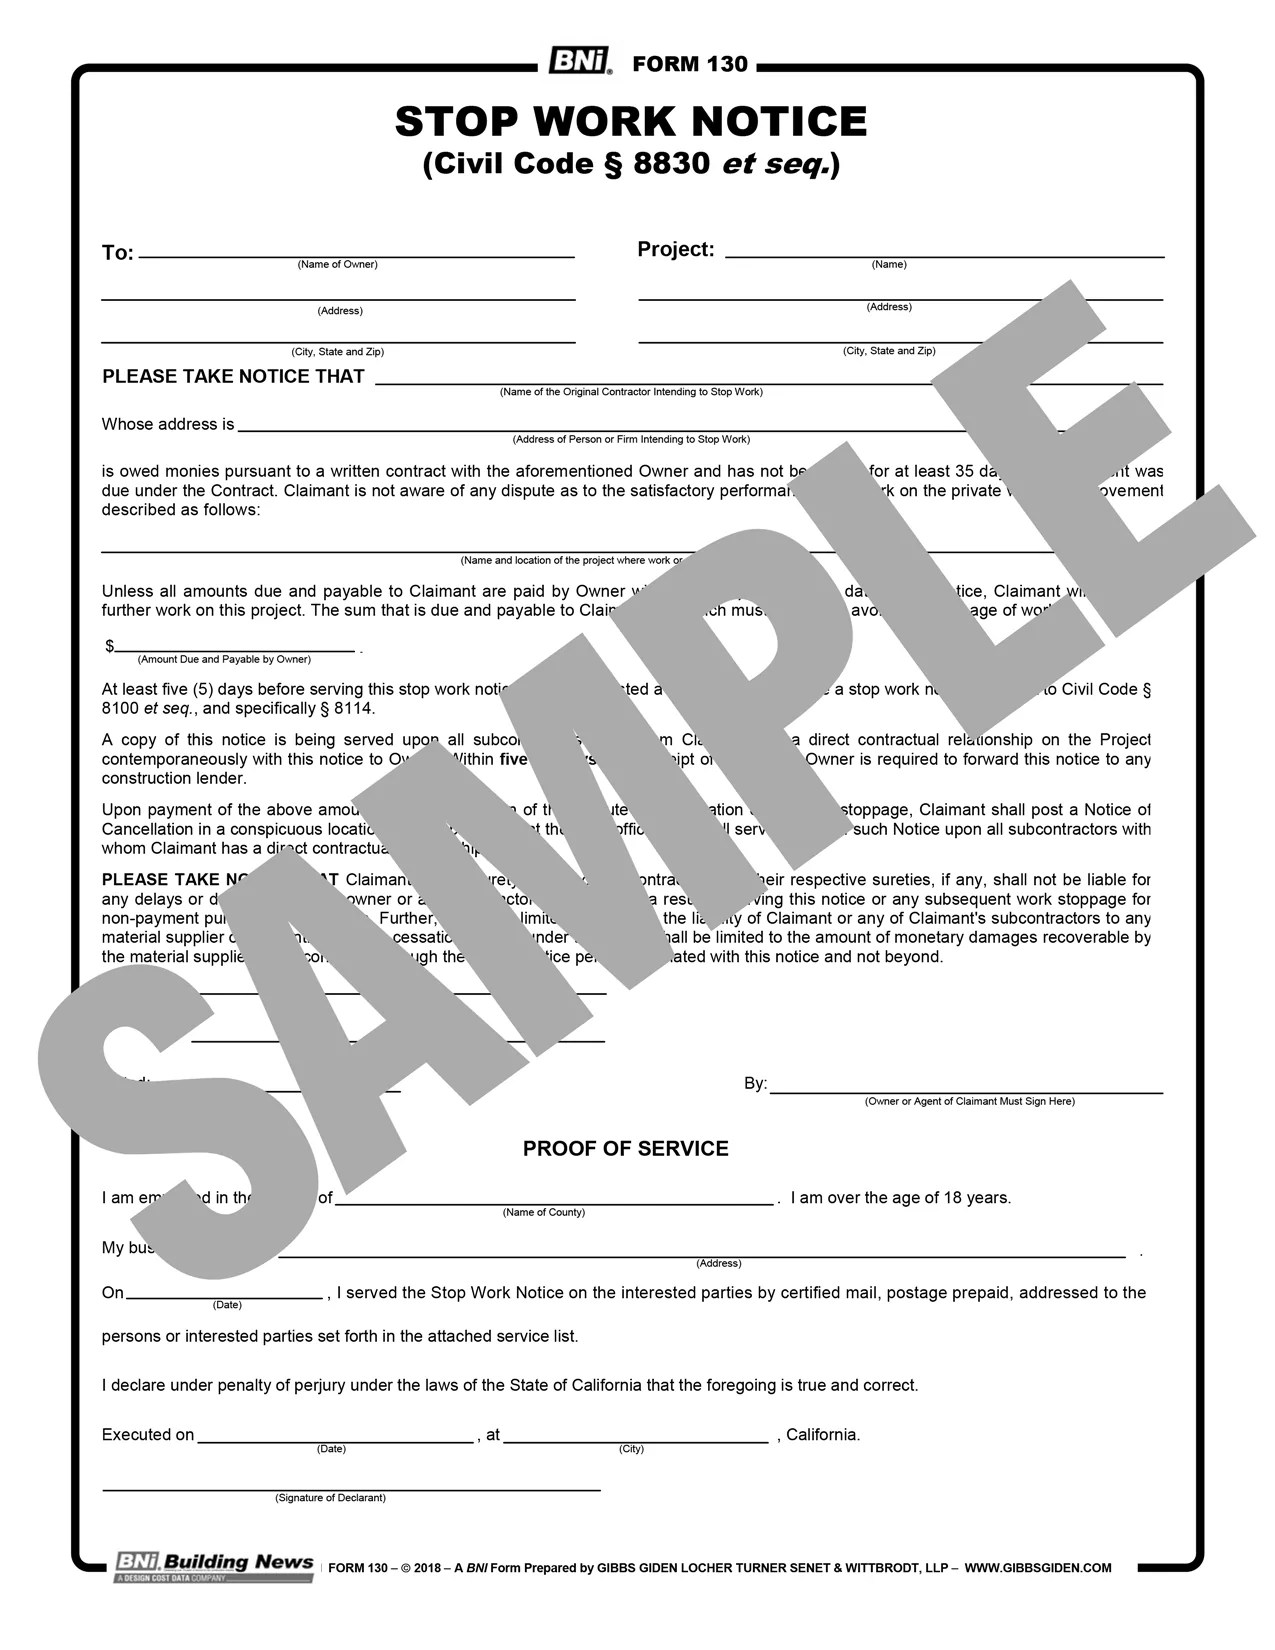 Easily edit online, download, print or share via email. Form 130 10 Day Stop Work Order Reusable Pdf Format